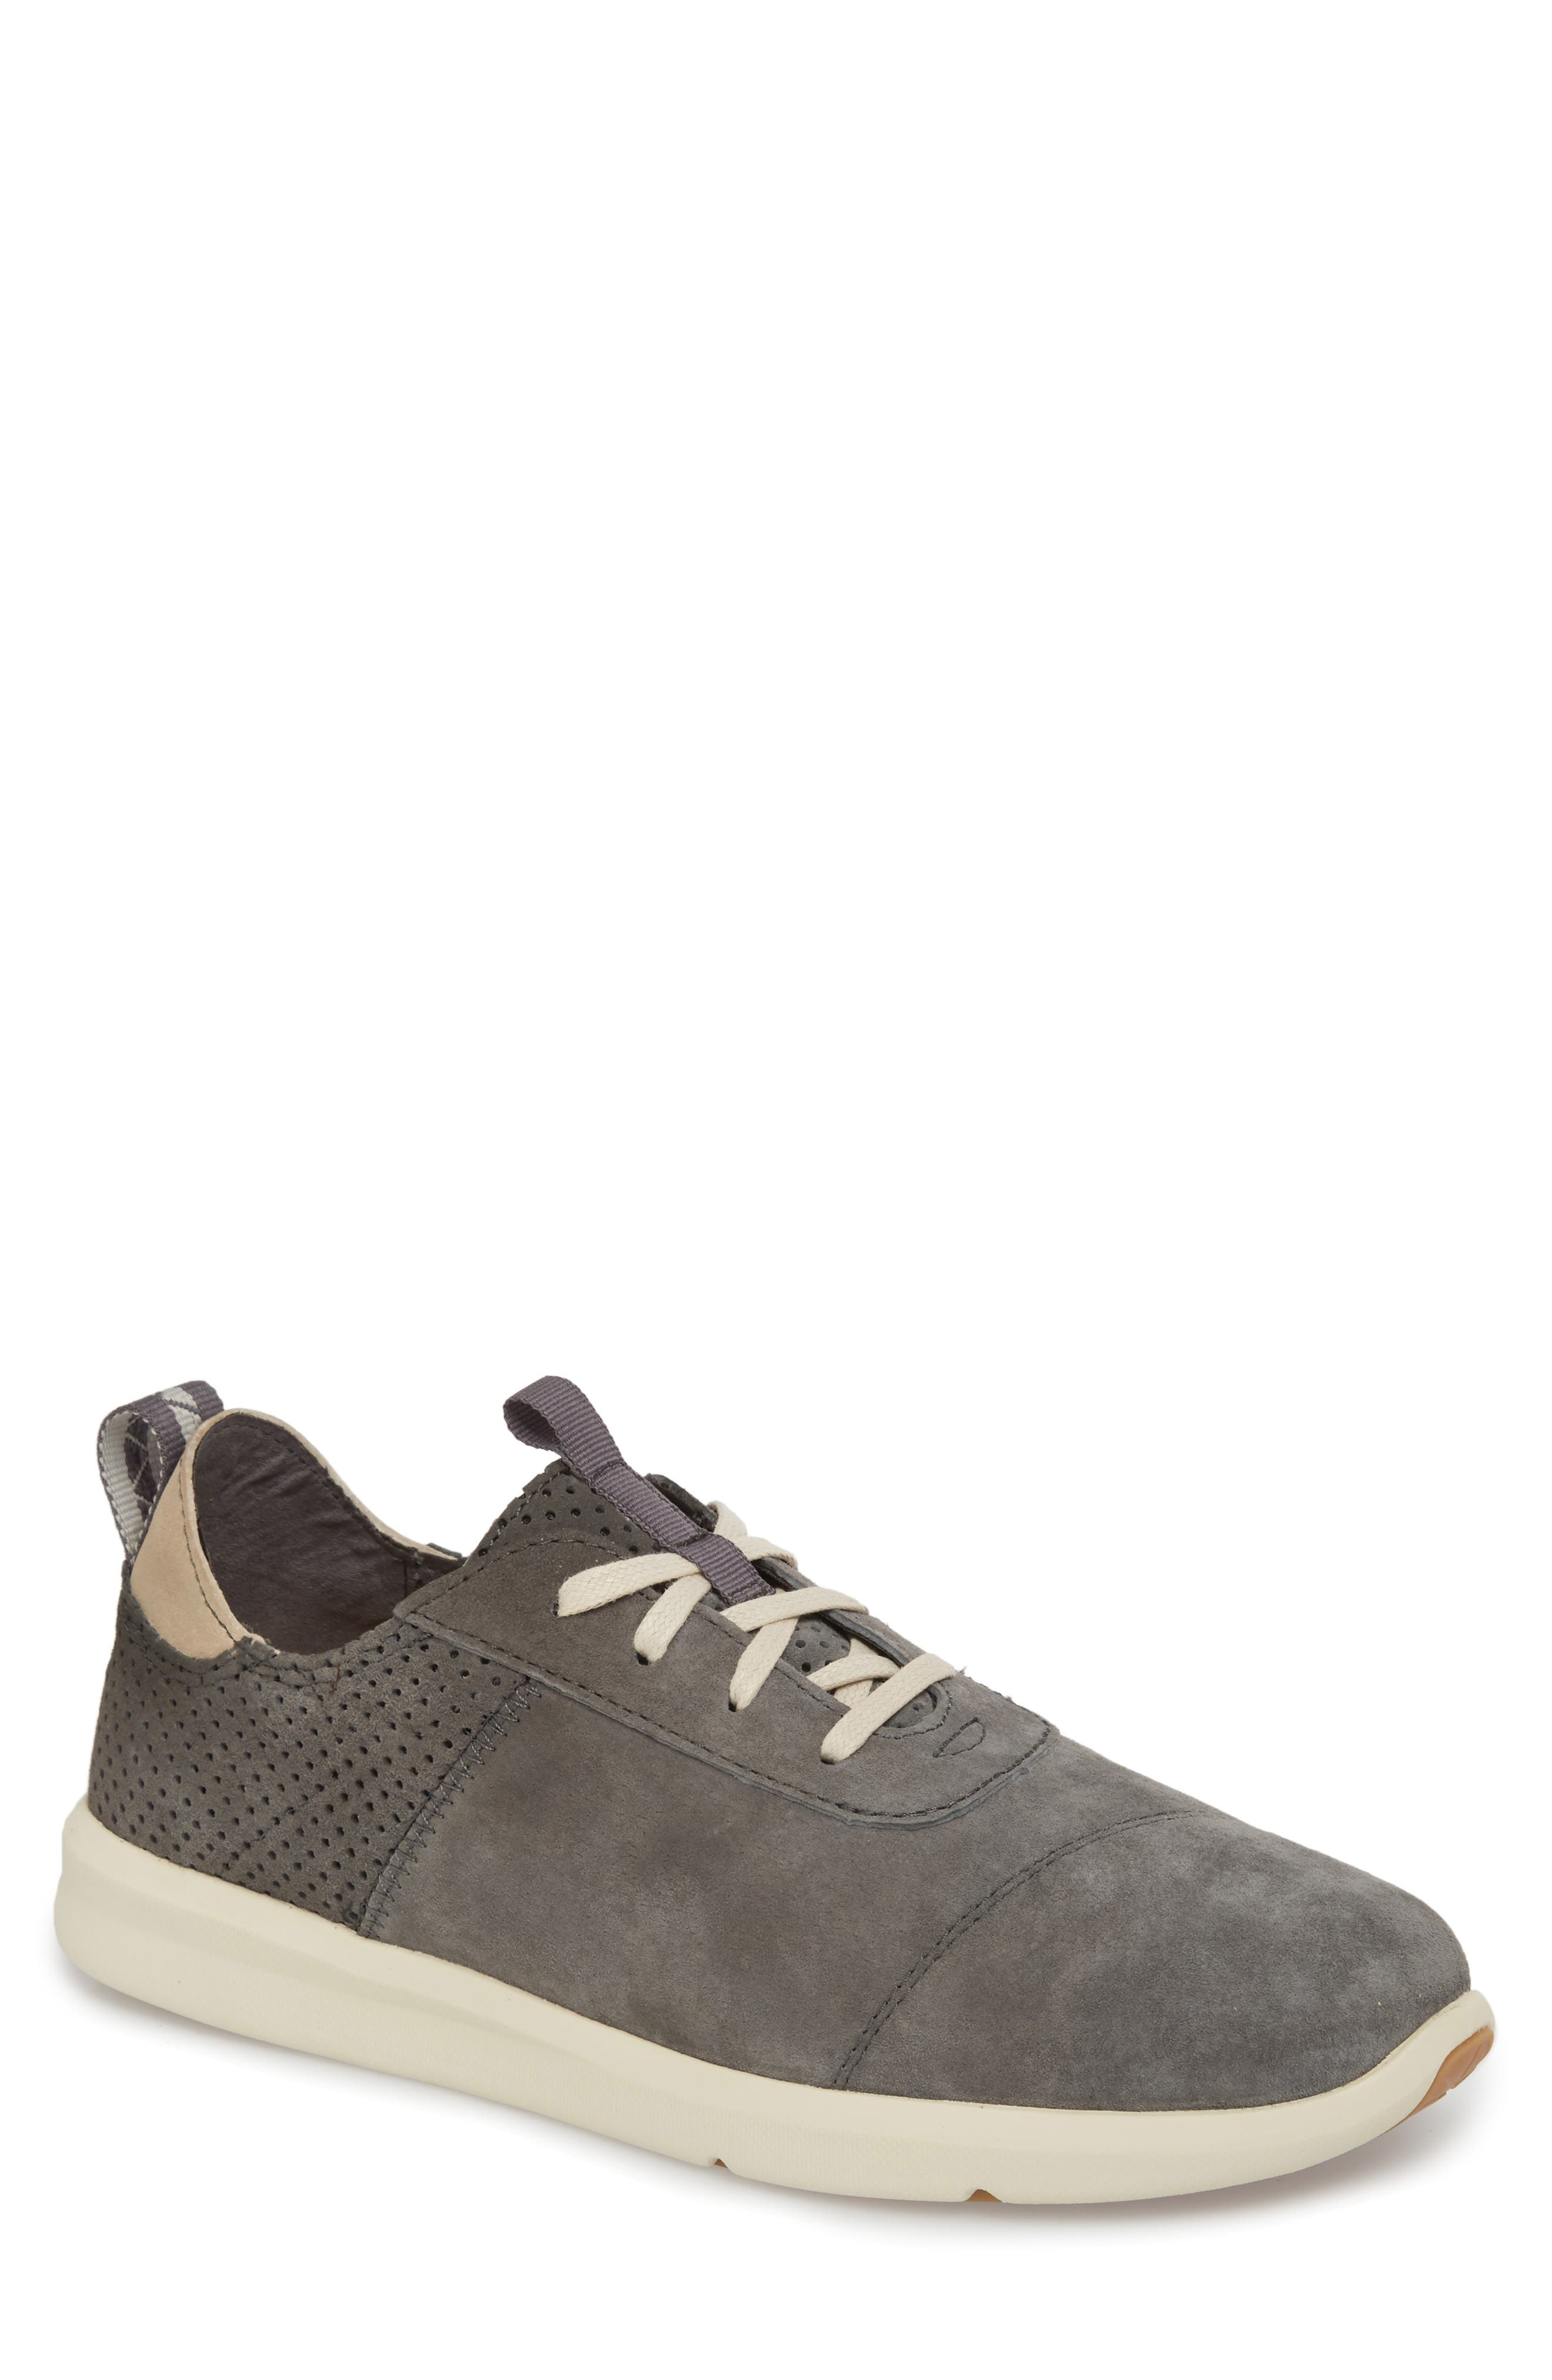 Cabrillo Perforated Low Top Sneaker,                         Main,                         color, 021